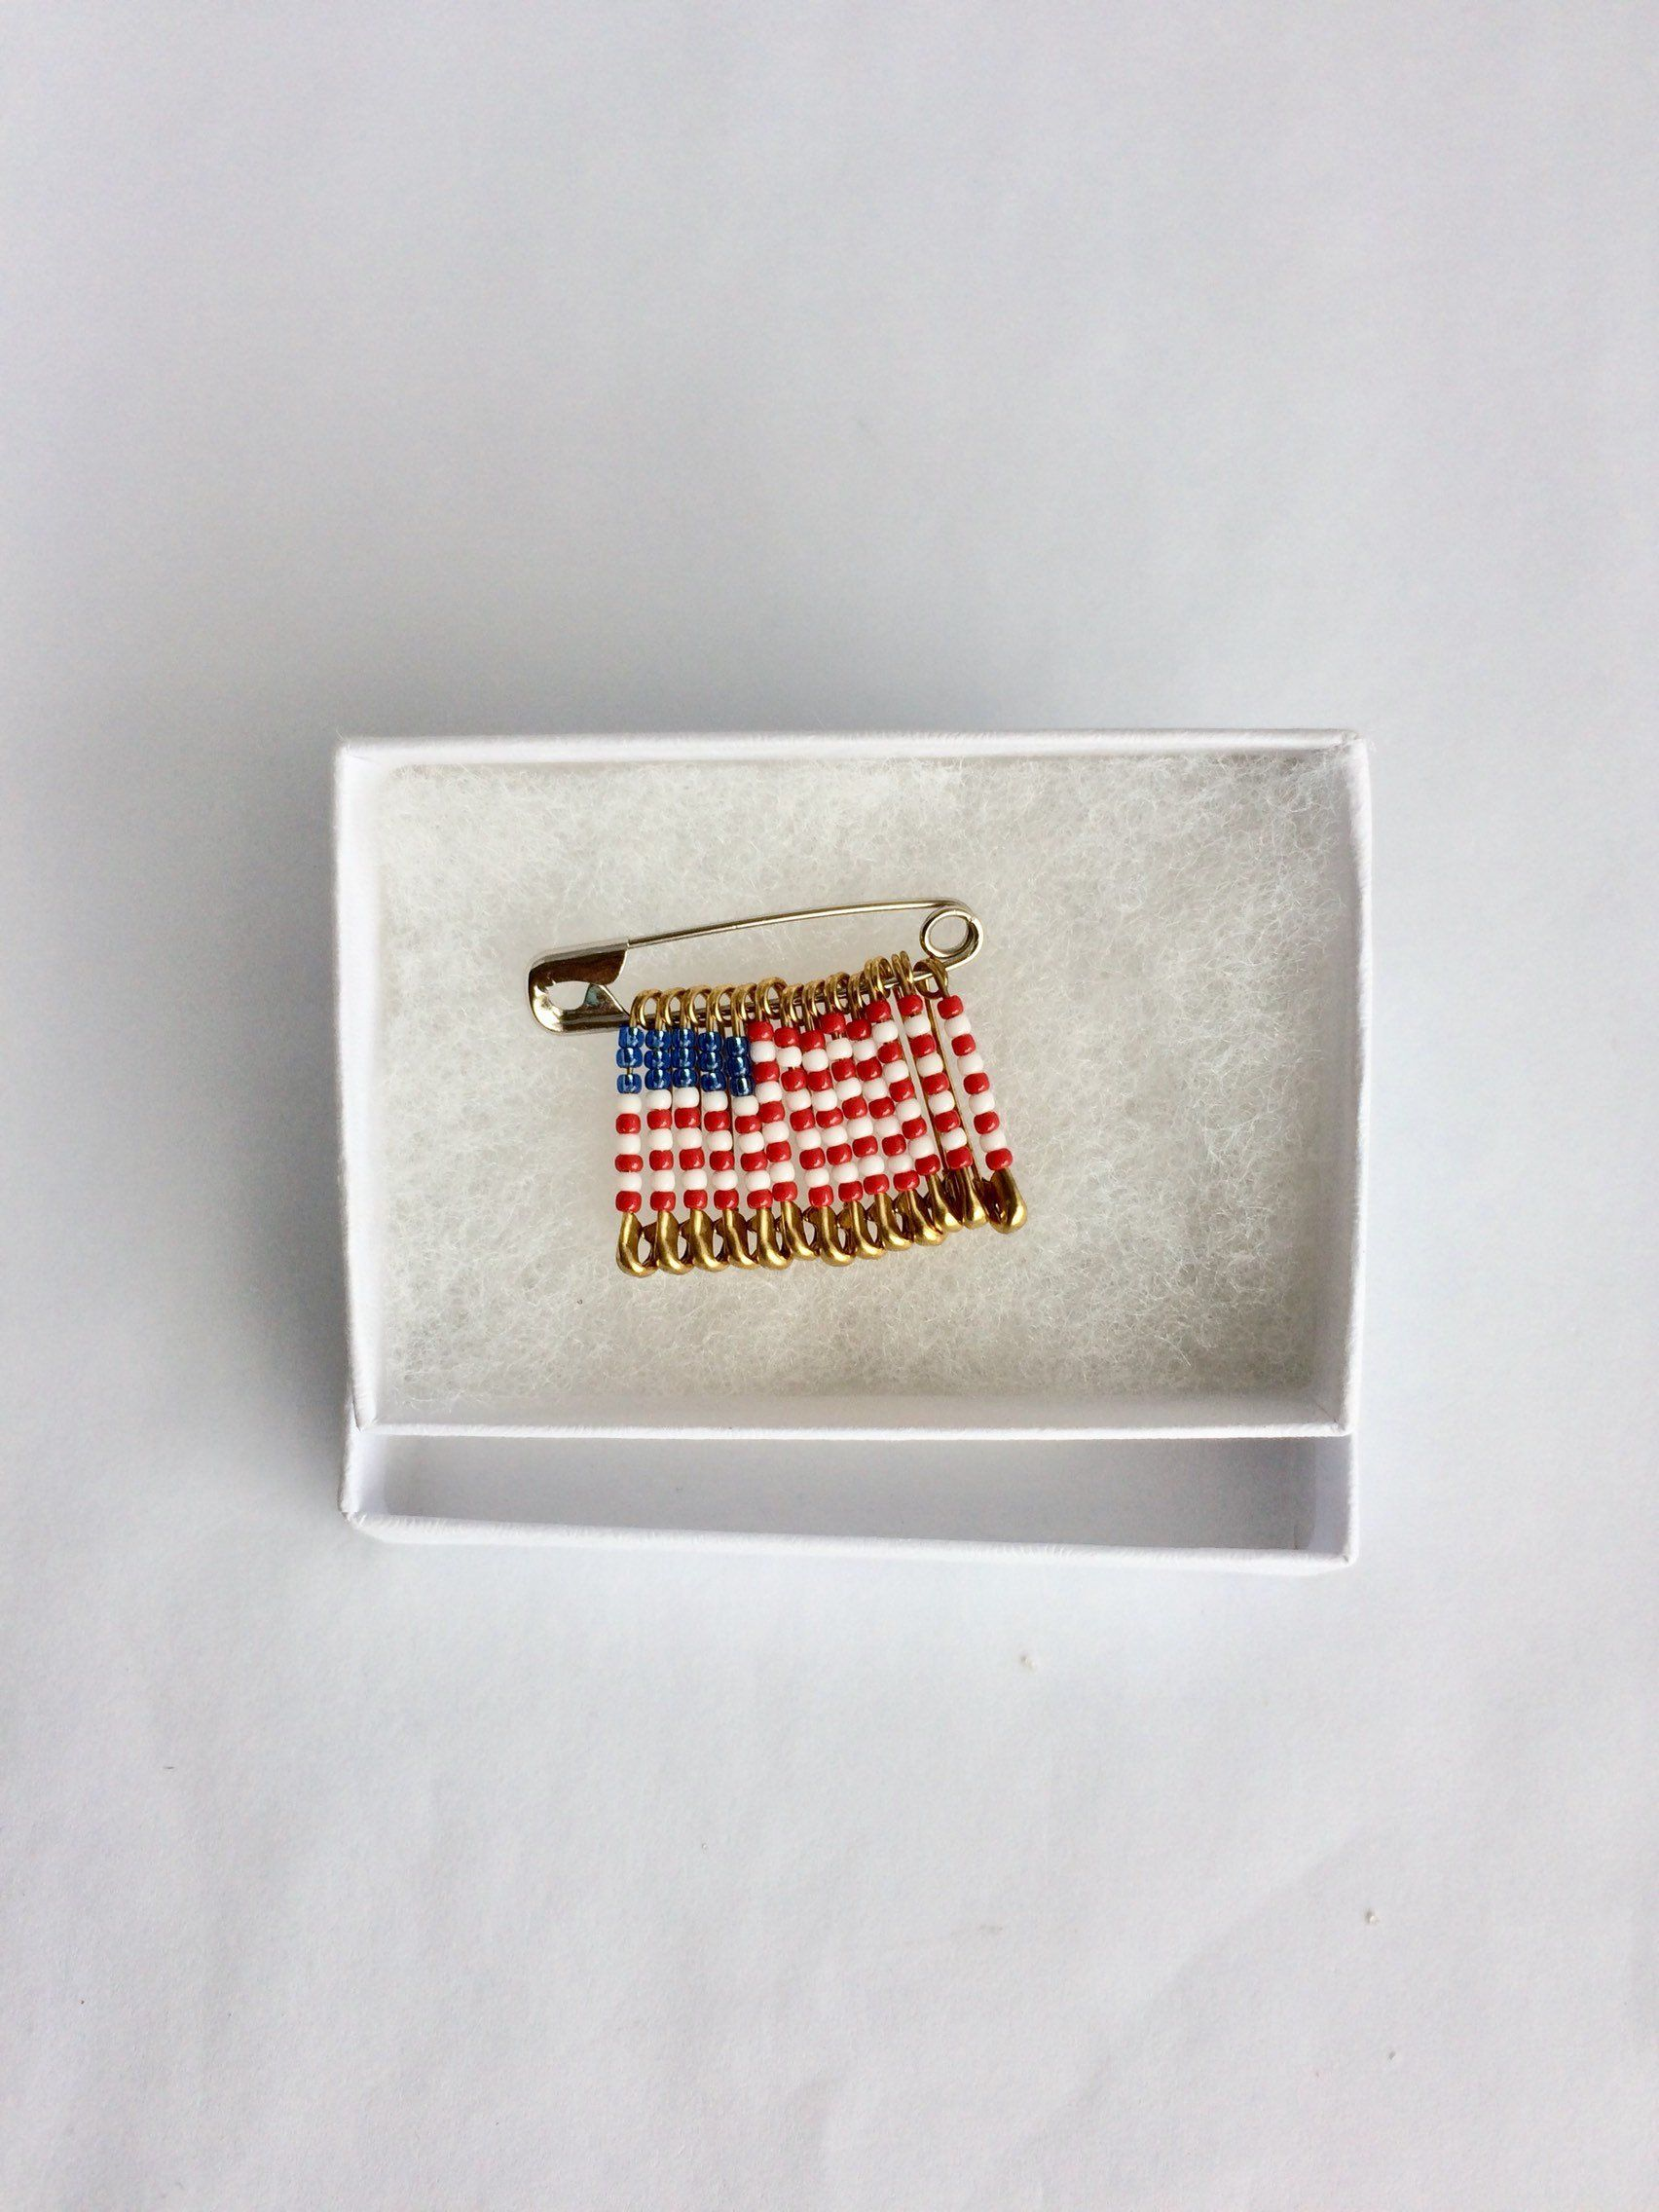 USA Flag Handmade Beaded Pin Brooch Safety Birthday Gift Veterans Day For Her Labor Lapel By FlagPinsbyAnnette On Etsy